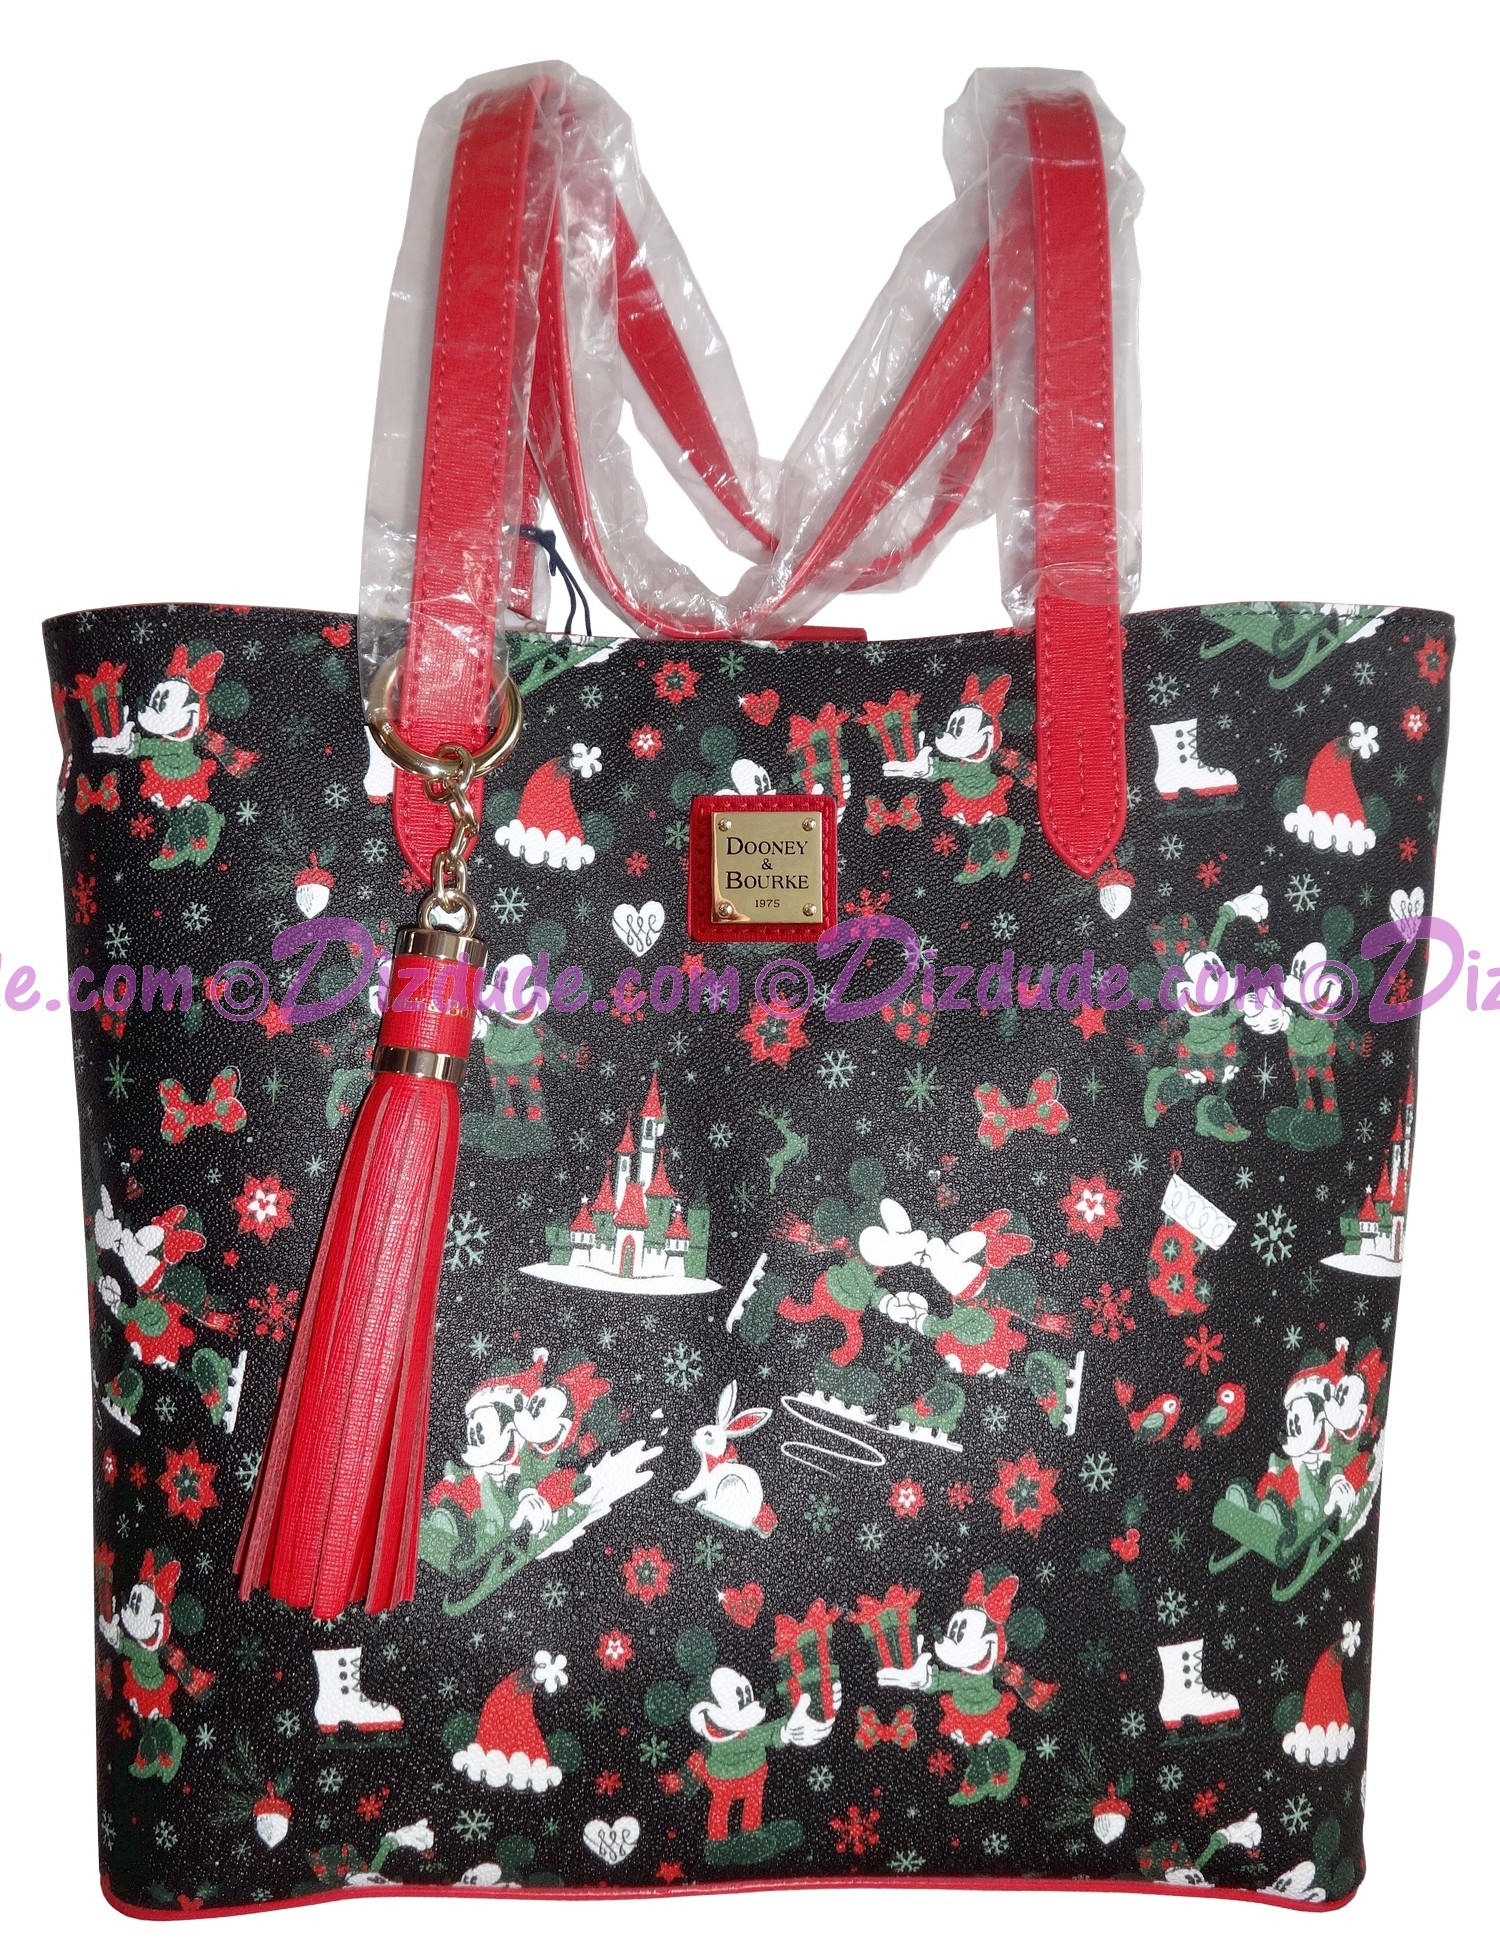 Dooney & Bourke Christmas Holiday Woodland Winter Tote - Walt Disney World Exclusive © Dizdude.com